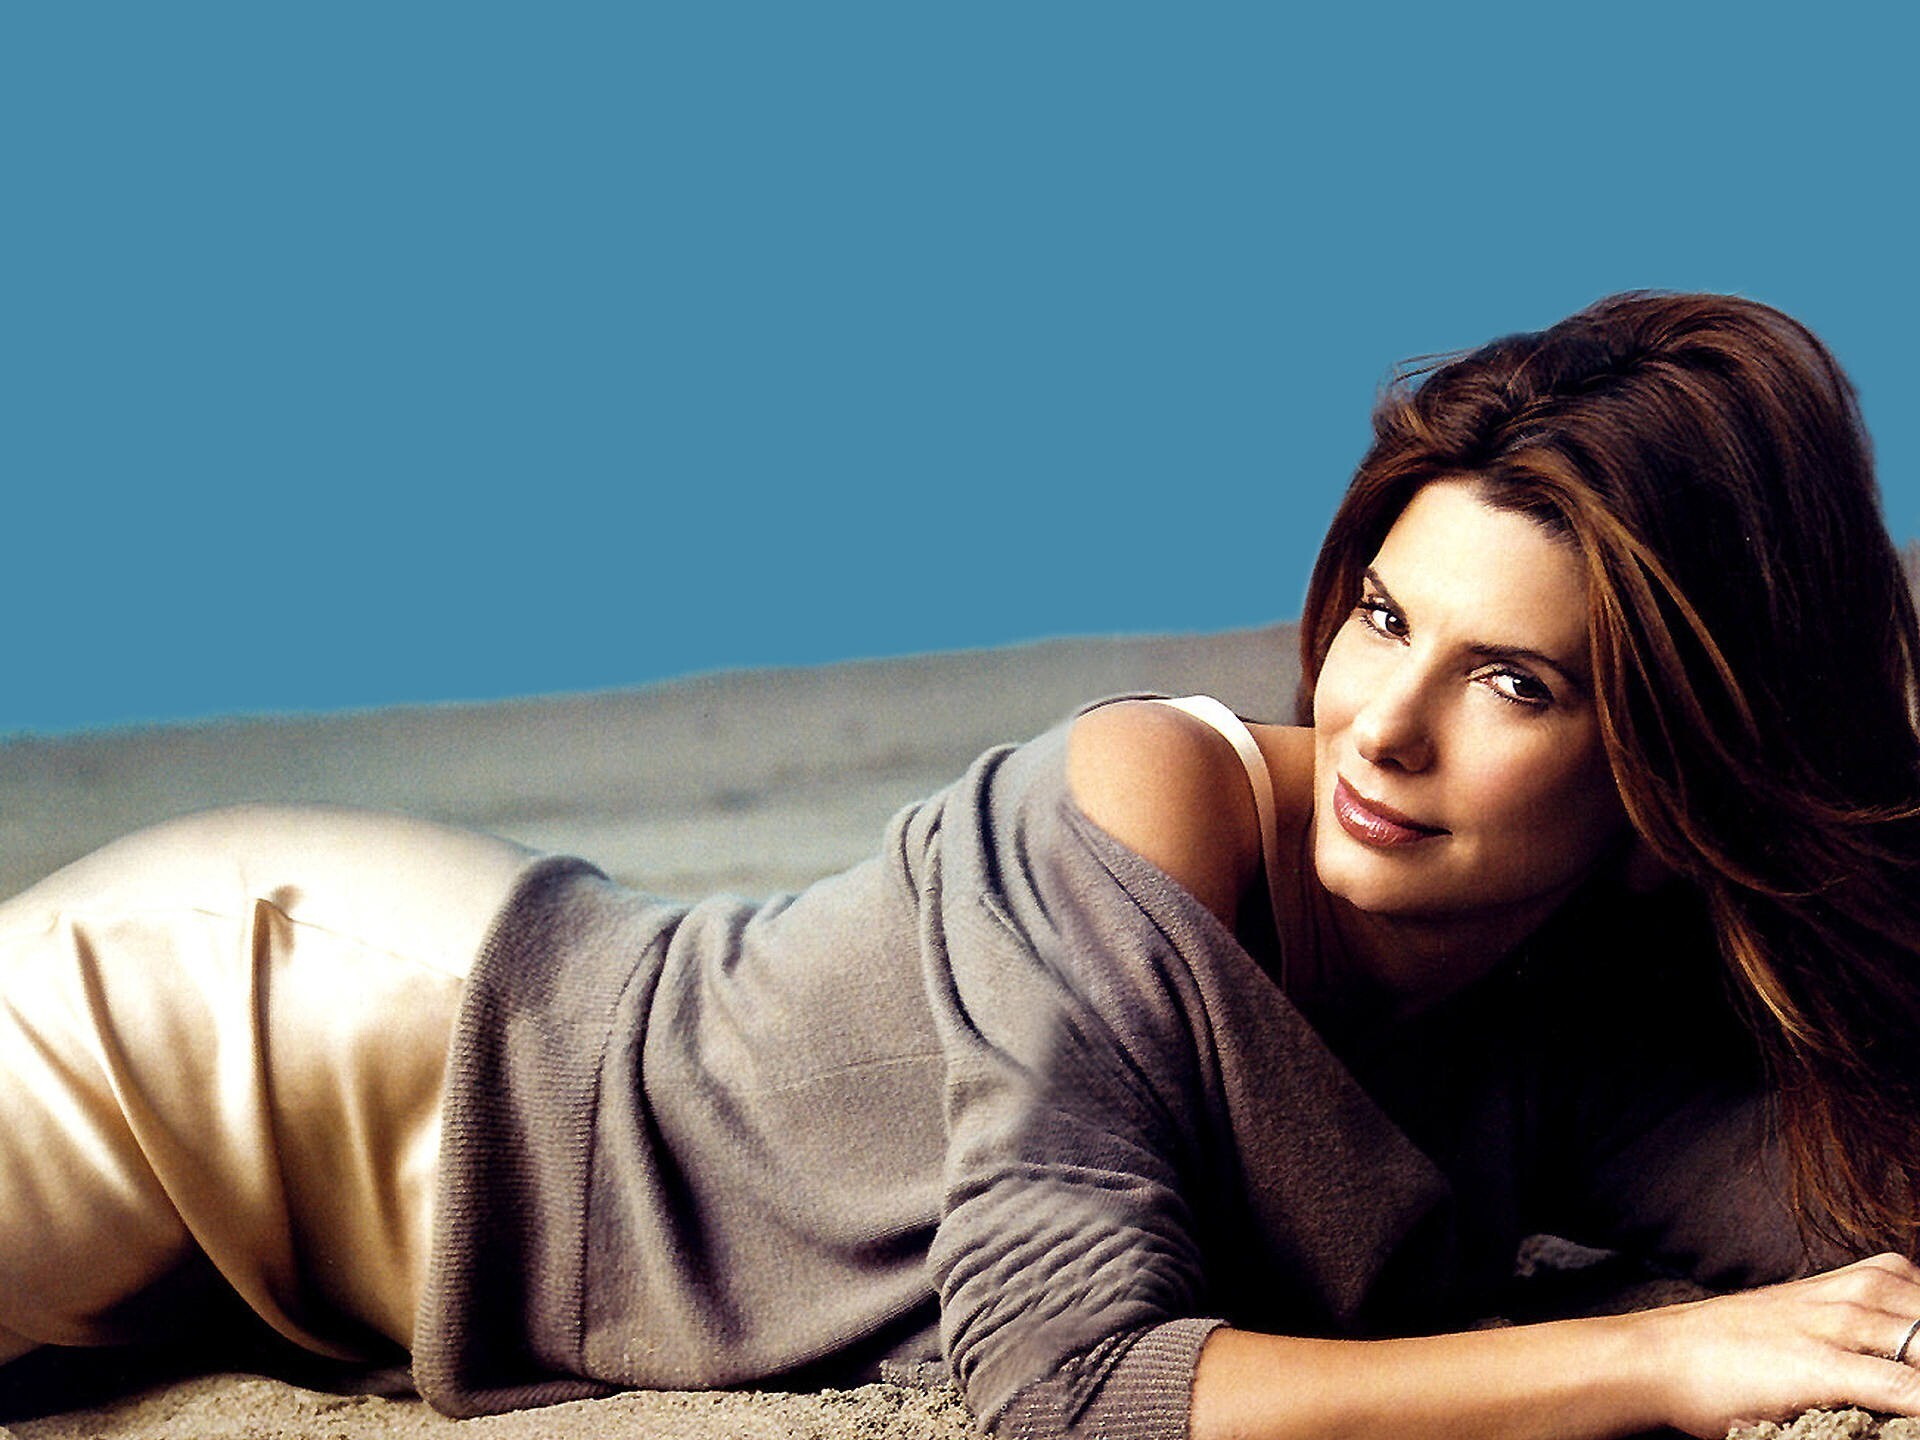 Is a cute Sandra Bullock nude photos 2019